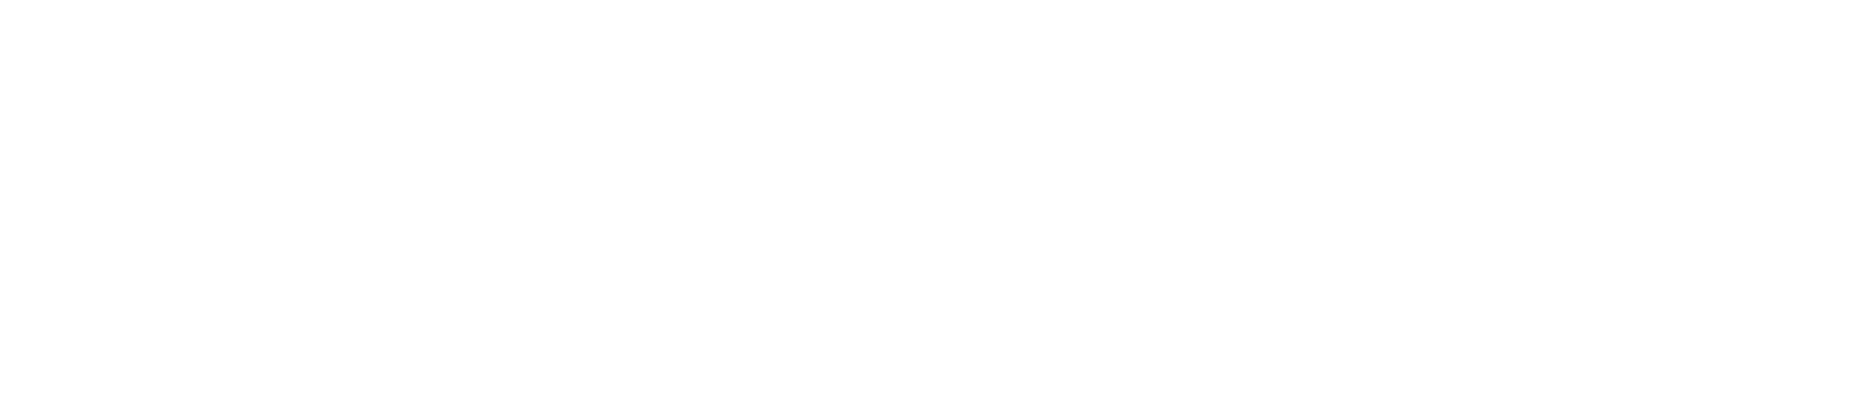 switchrs logo white long switchers social impact circular economy strategic design agency workshop tool entrepreneurship sustainability innovation keynote public speaking consultancy circulareconomy Mechelen circulaire economie